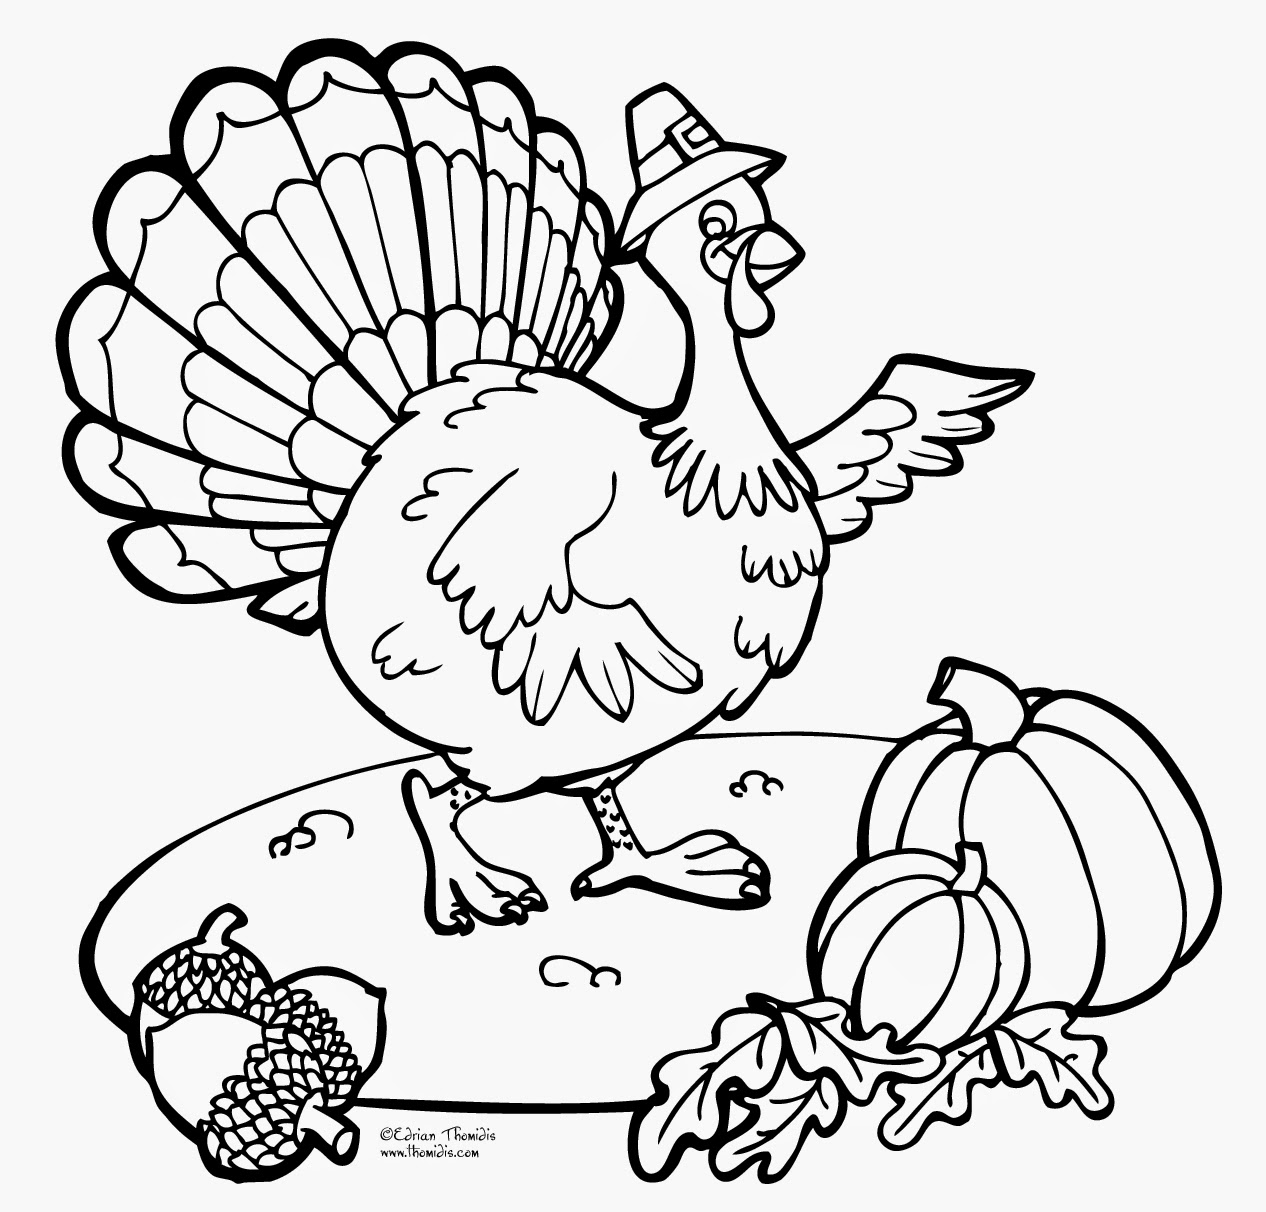 turkey color page thanksgiving day printable coloring pages minnesota miranda turkey page color